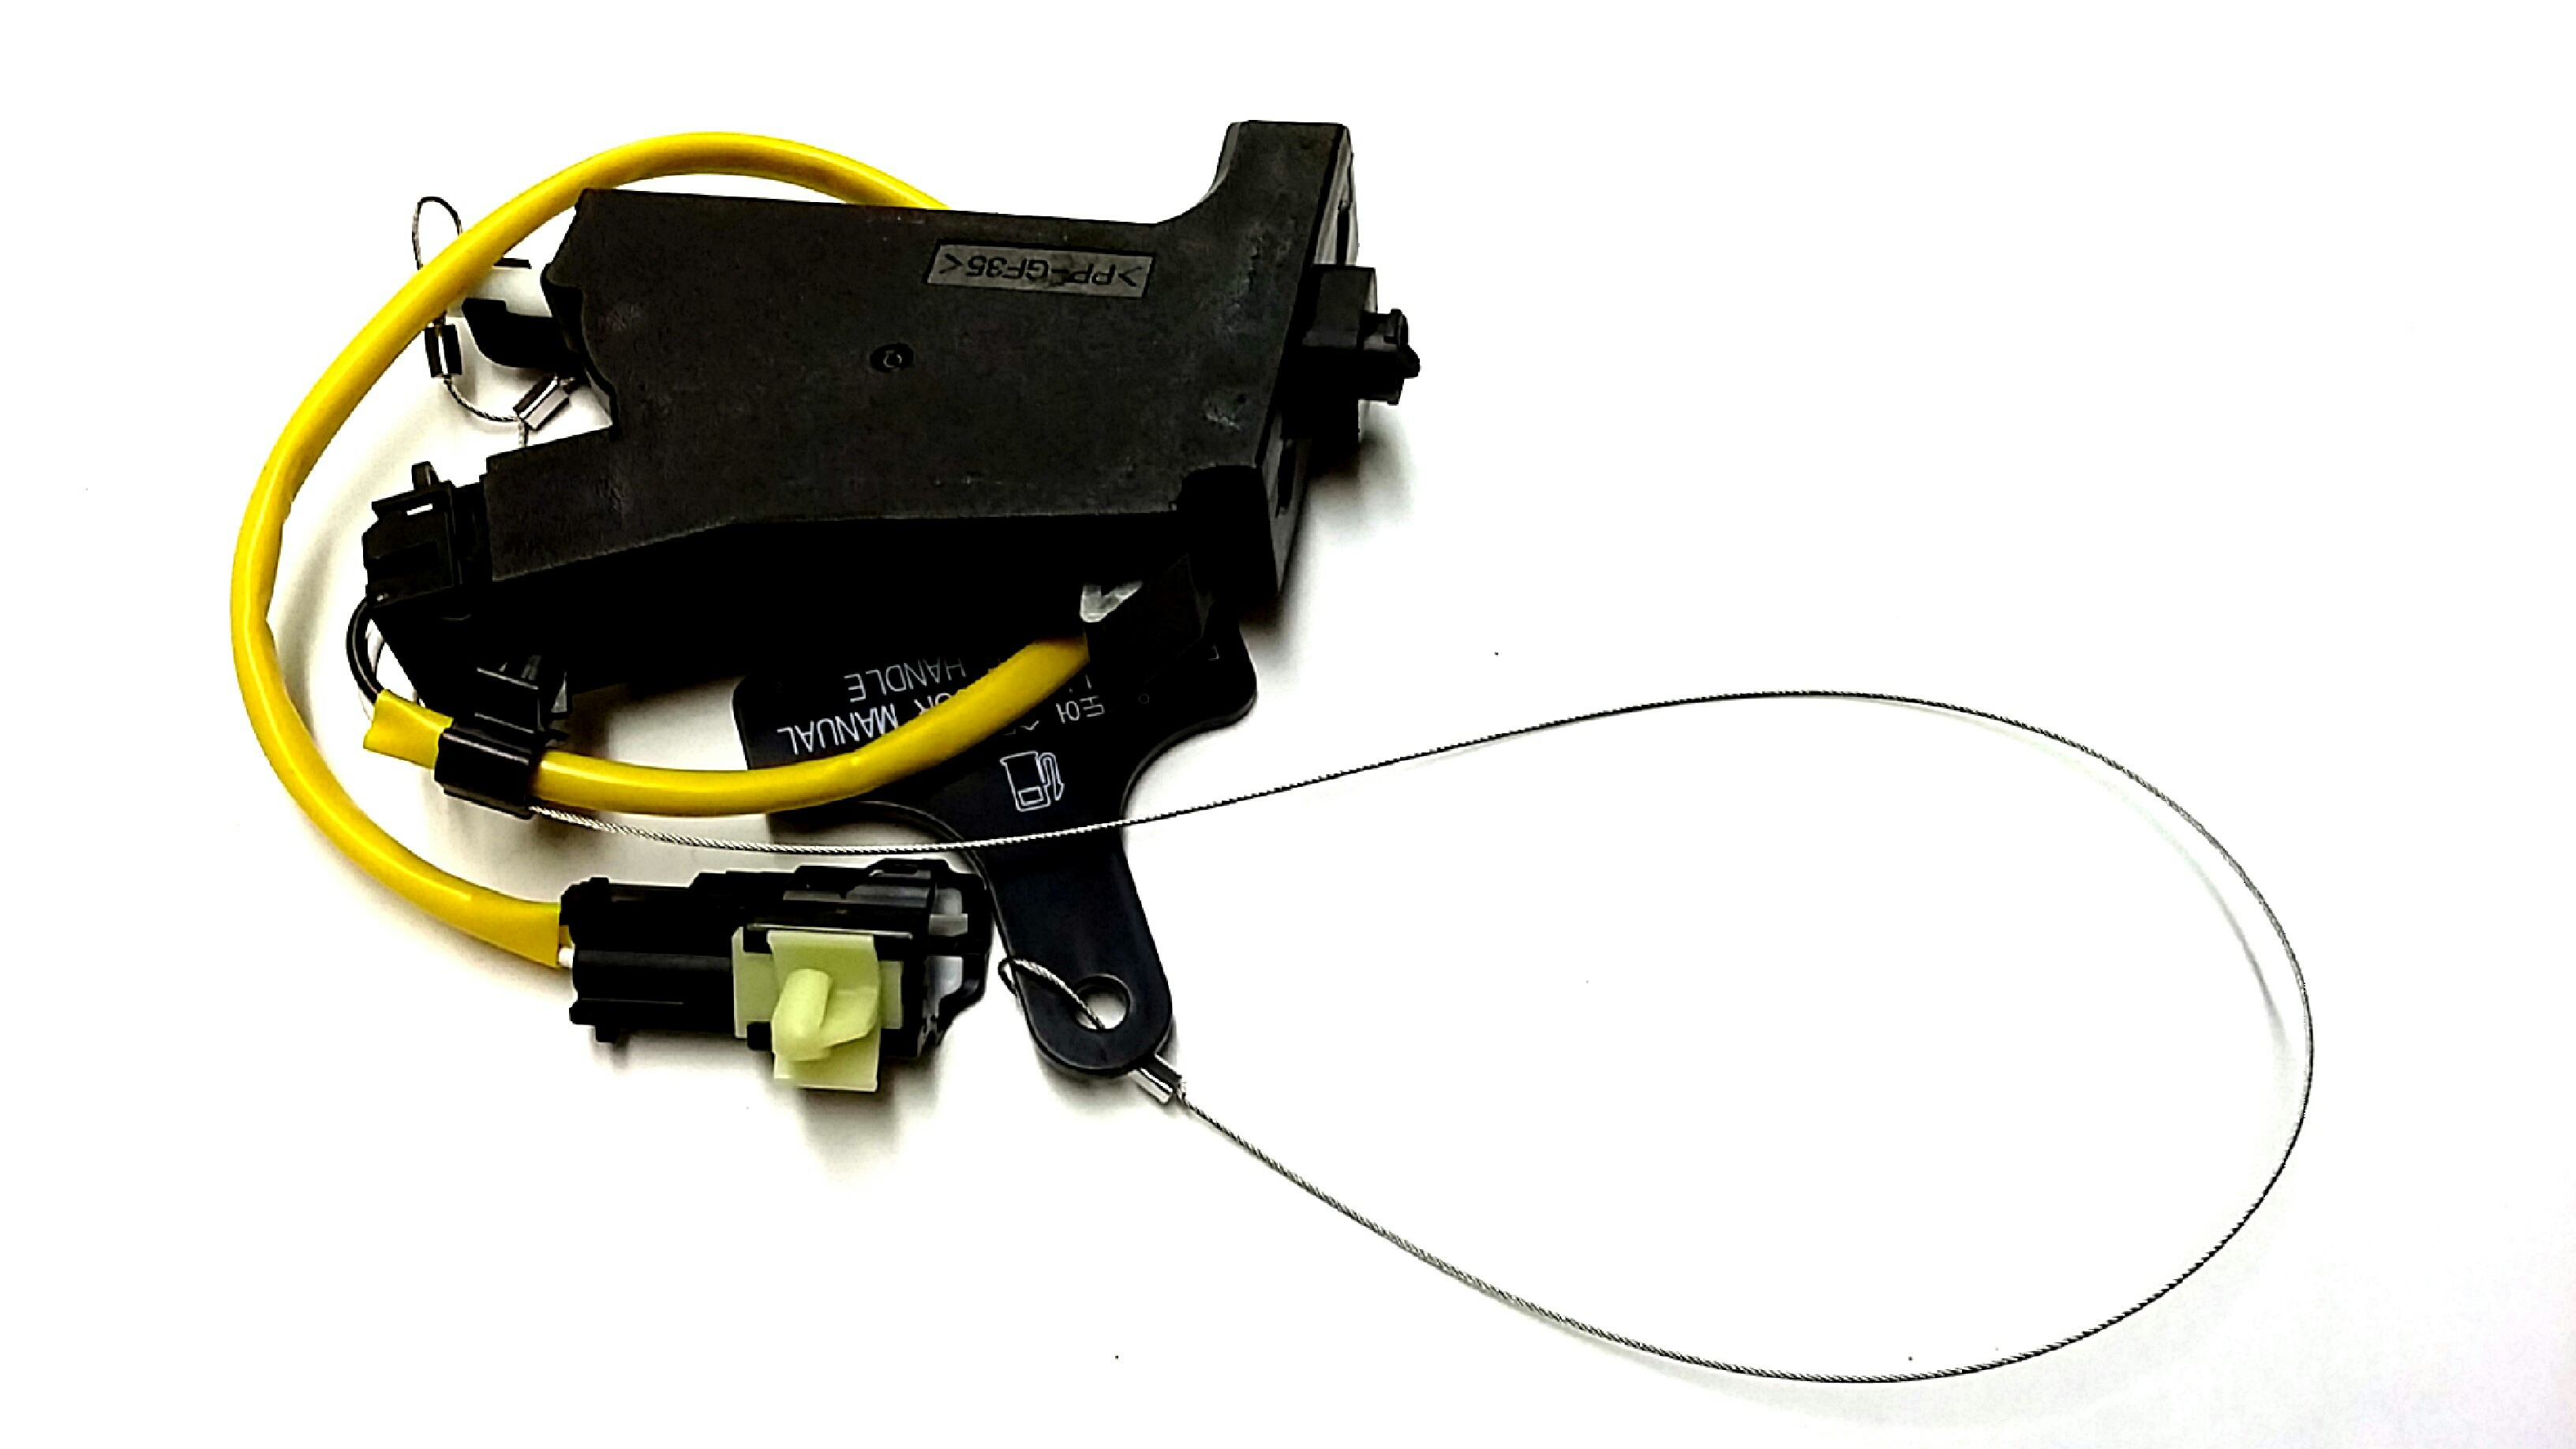 Hyundai Genesis G90 Fuel Filler Door Lock Actuator Lock